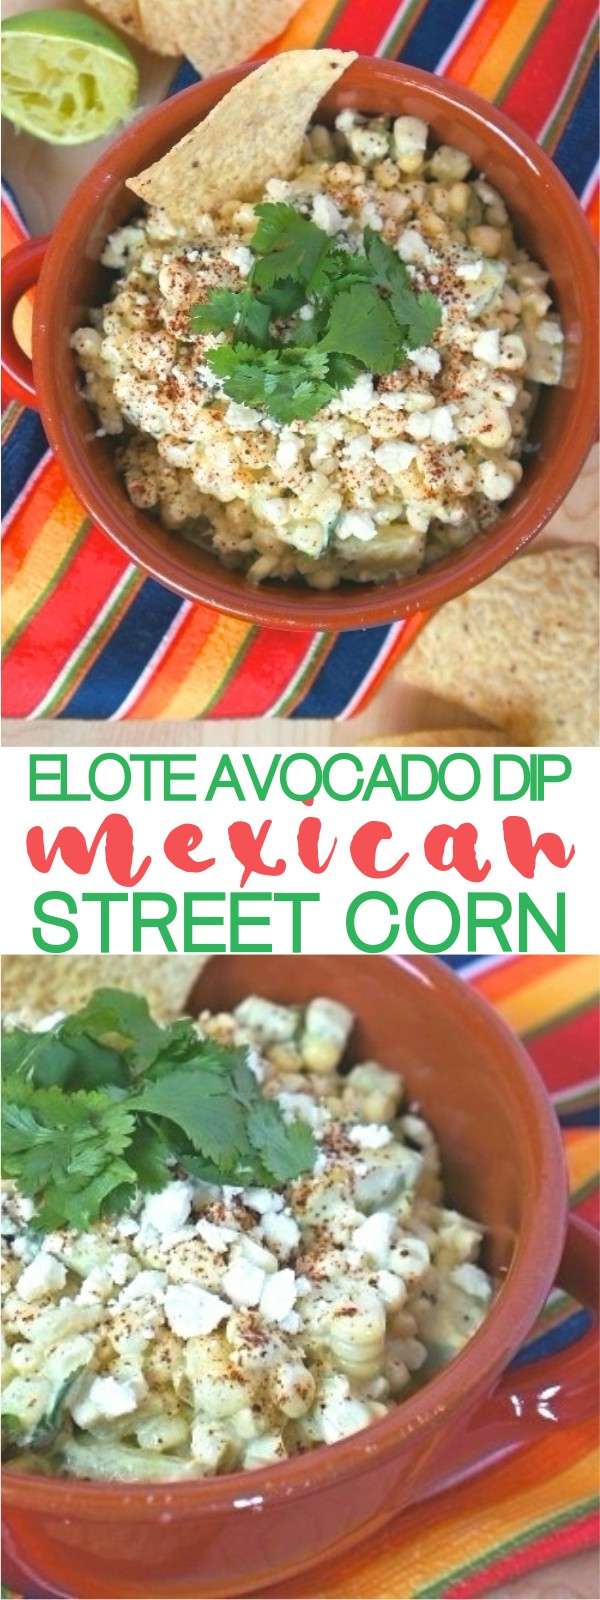 Elote avocado corn dip - It's An Easy Mexican street corn recipe in a bowl!